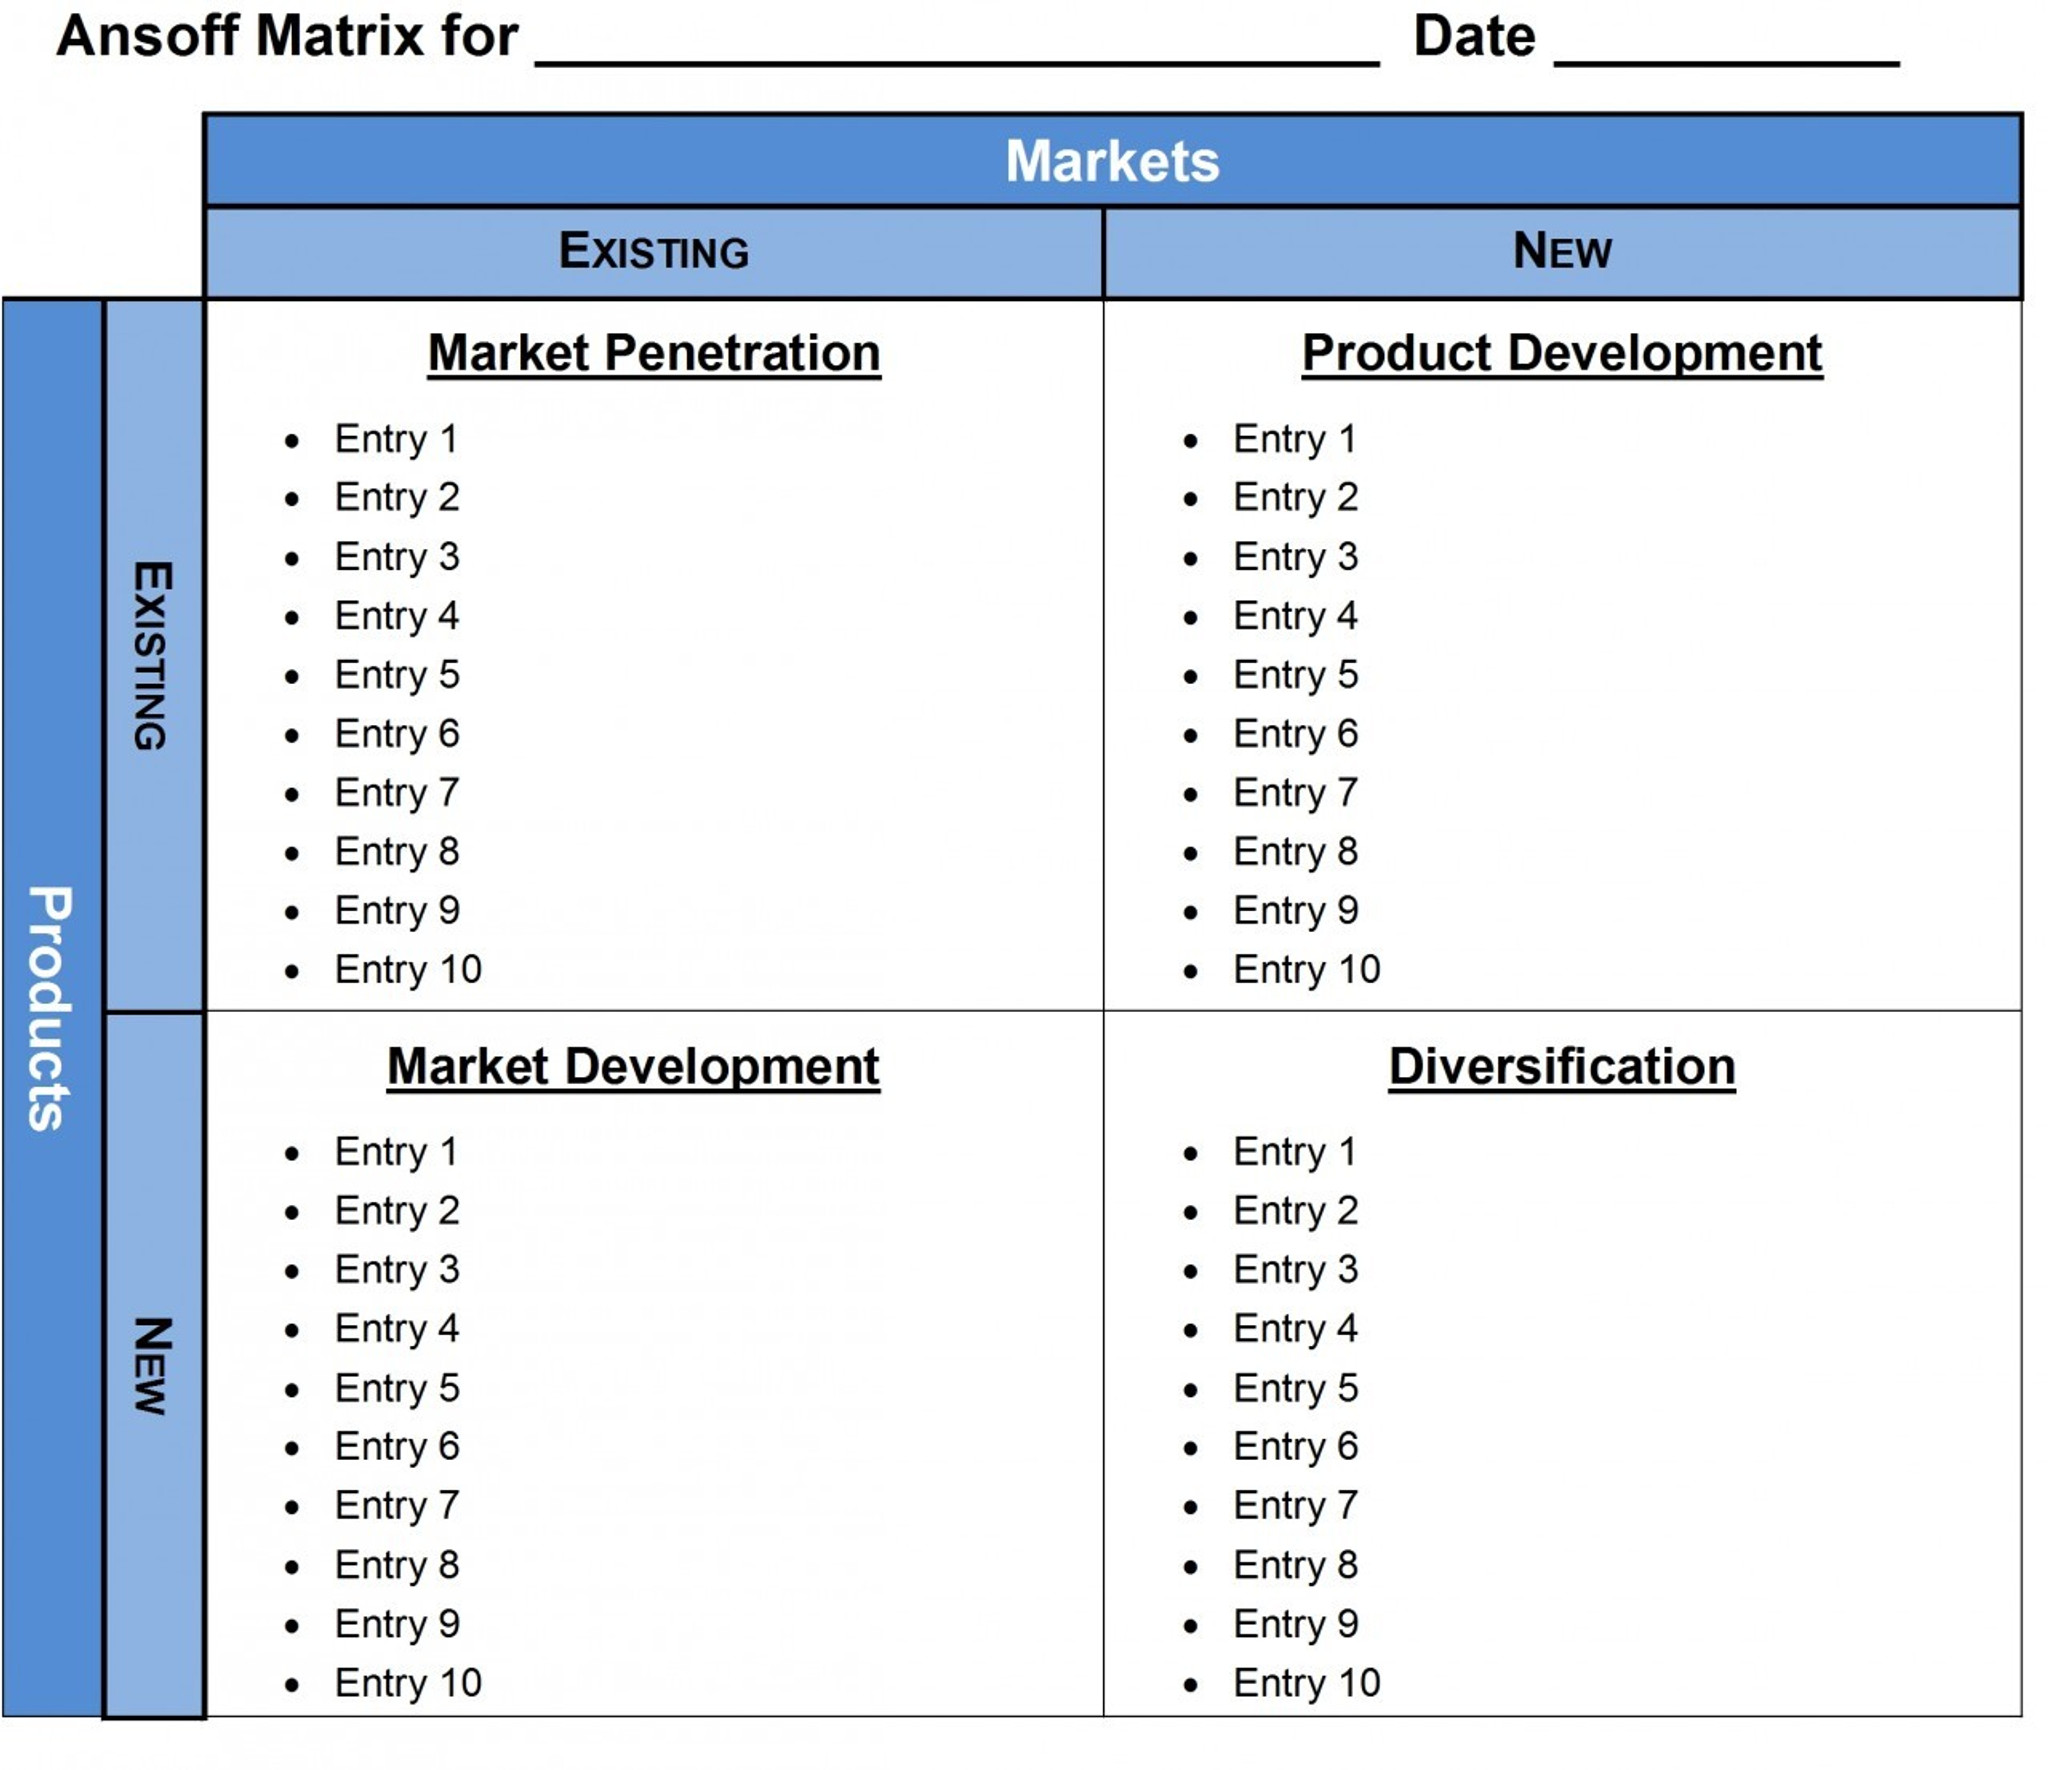 ansoff matrix product market growth template excel word powerpoint